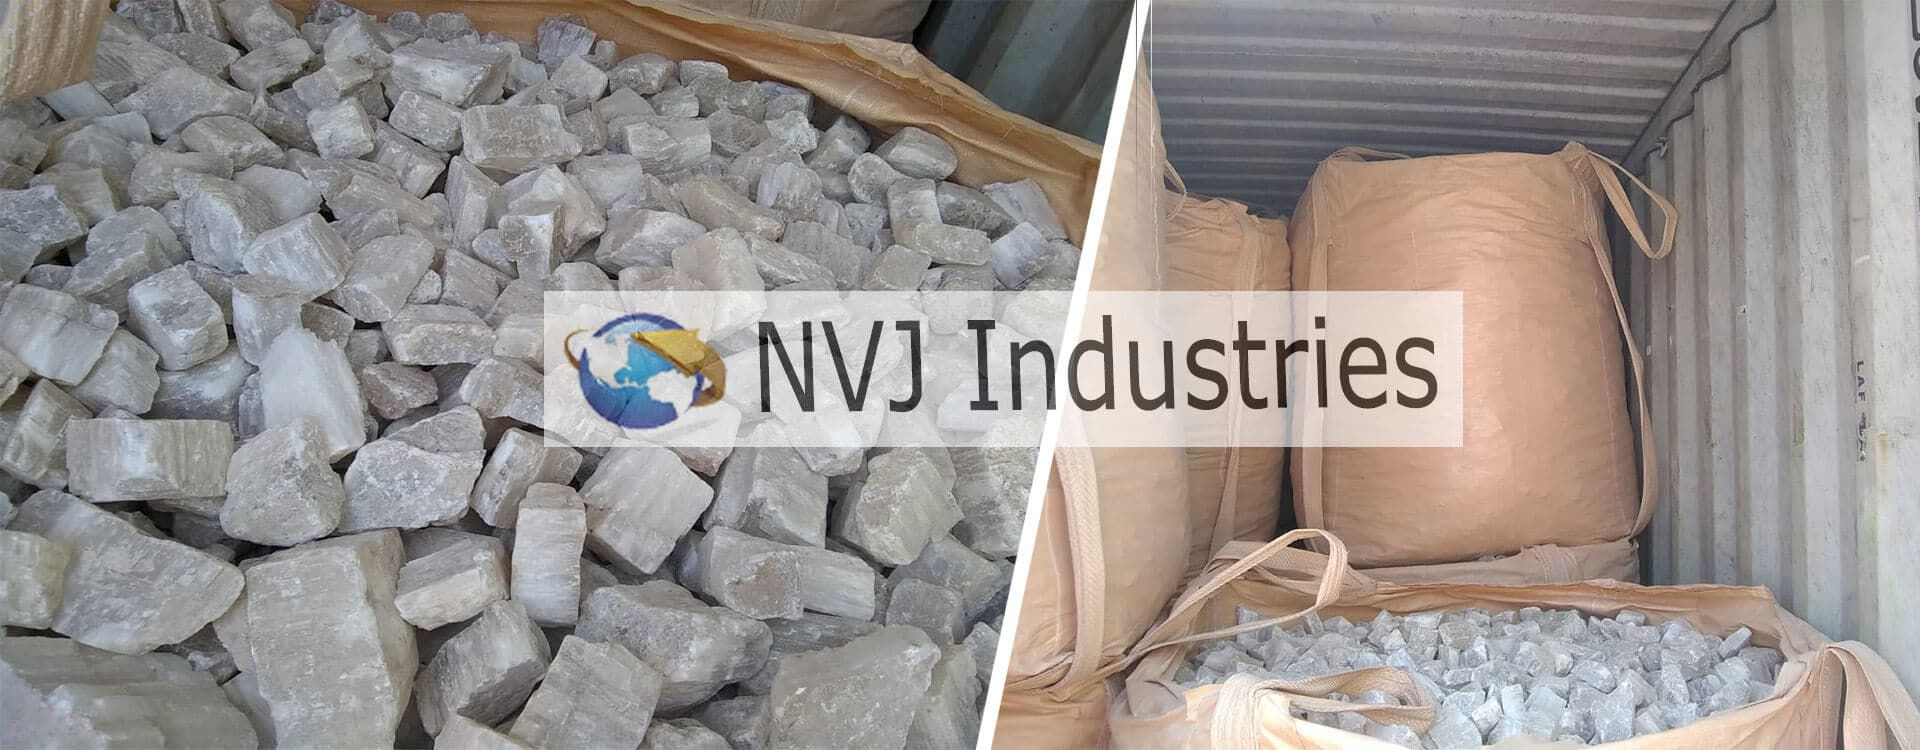 Gypsum-Exporter-in-Pakistan-NVJ-Industries